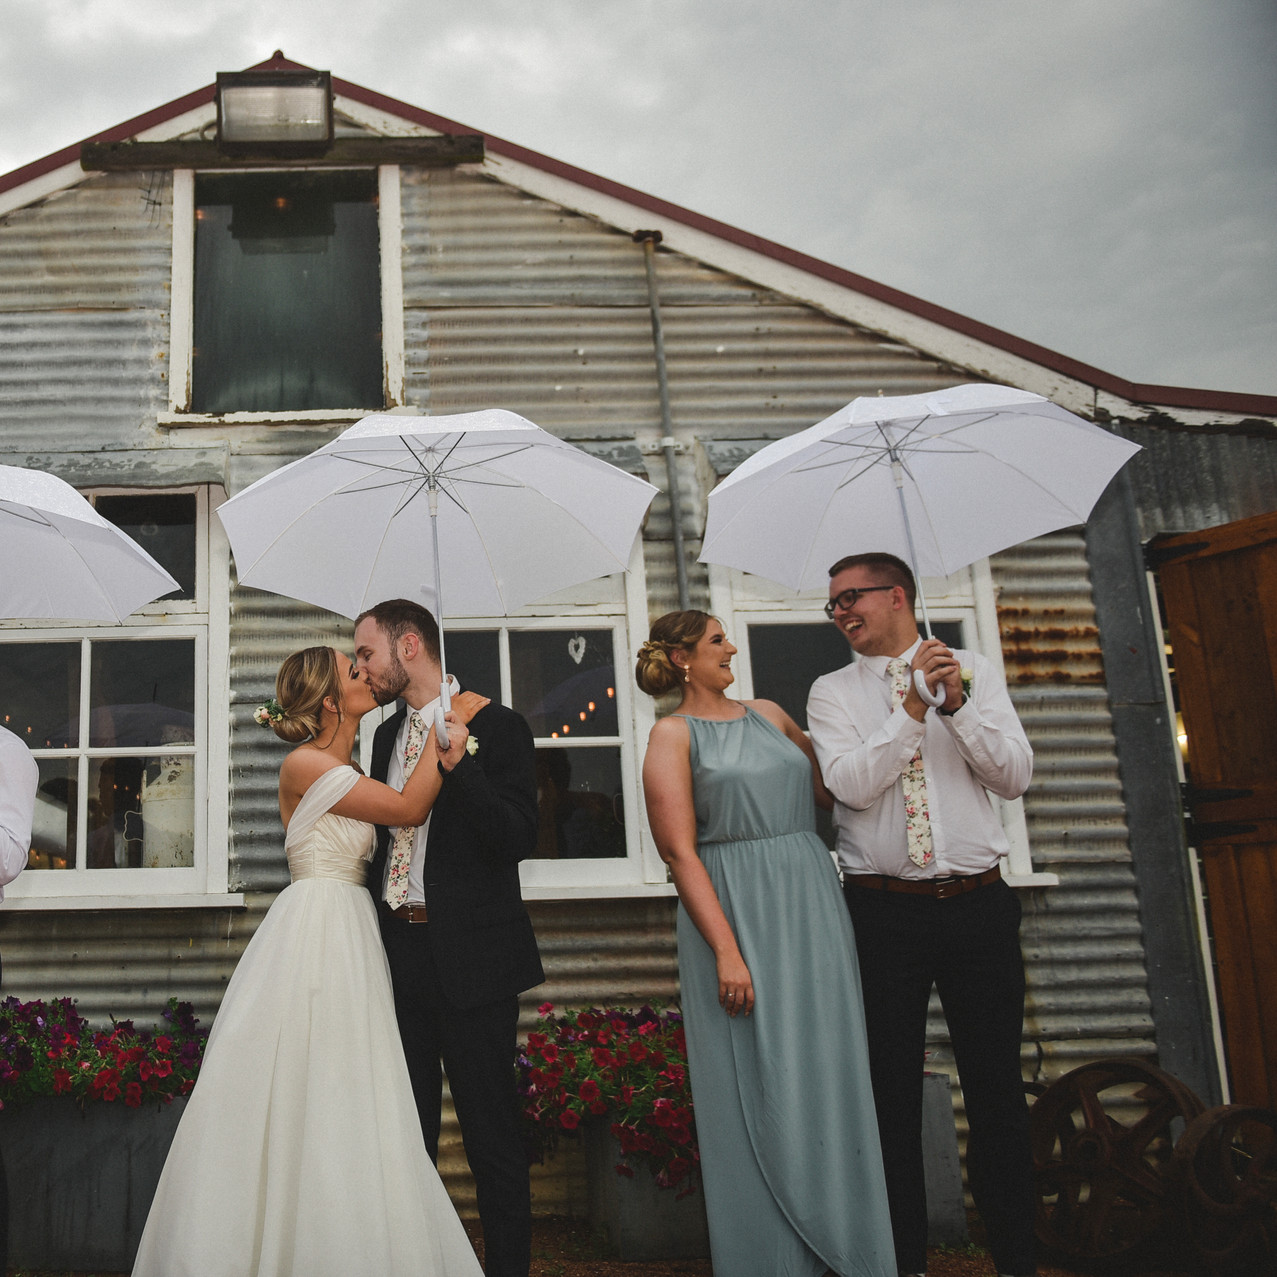 Professional Wedding Photographers in Canberra